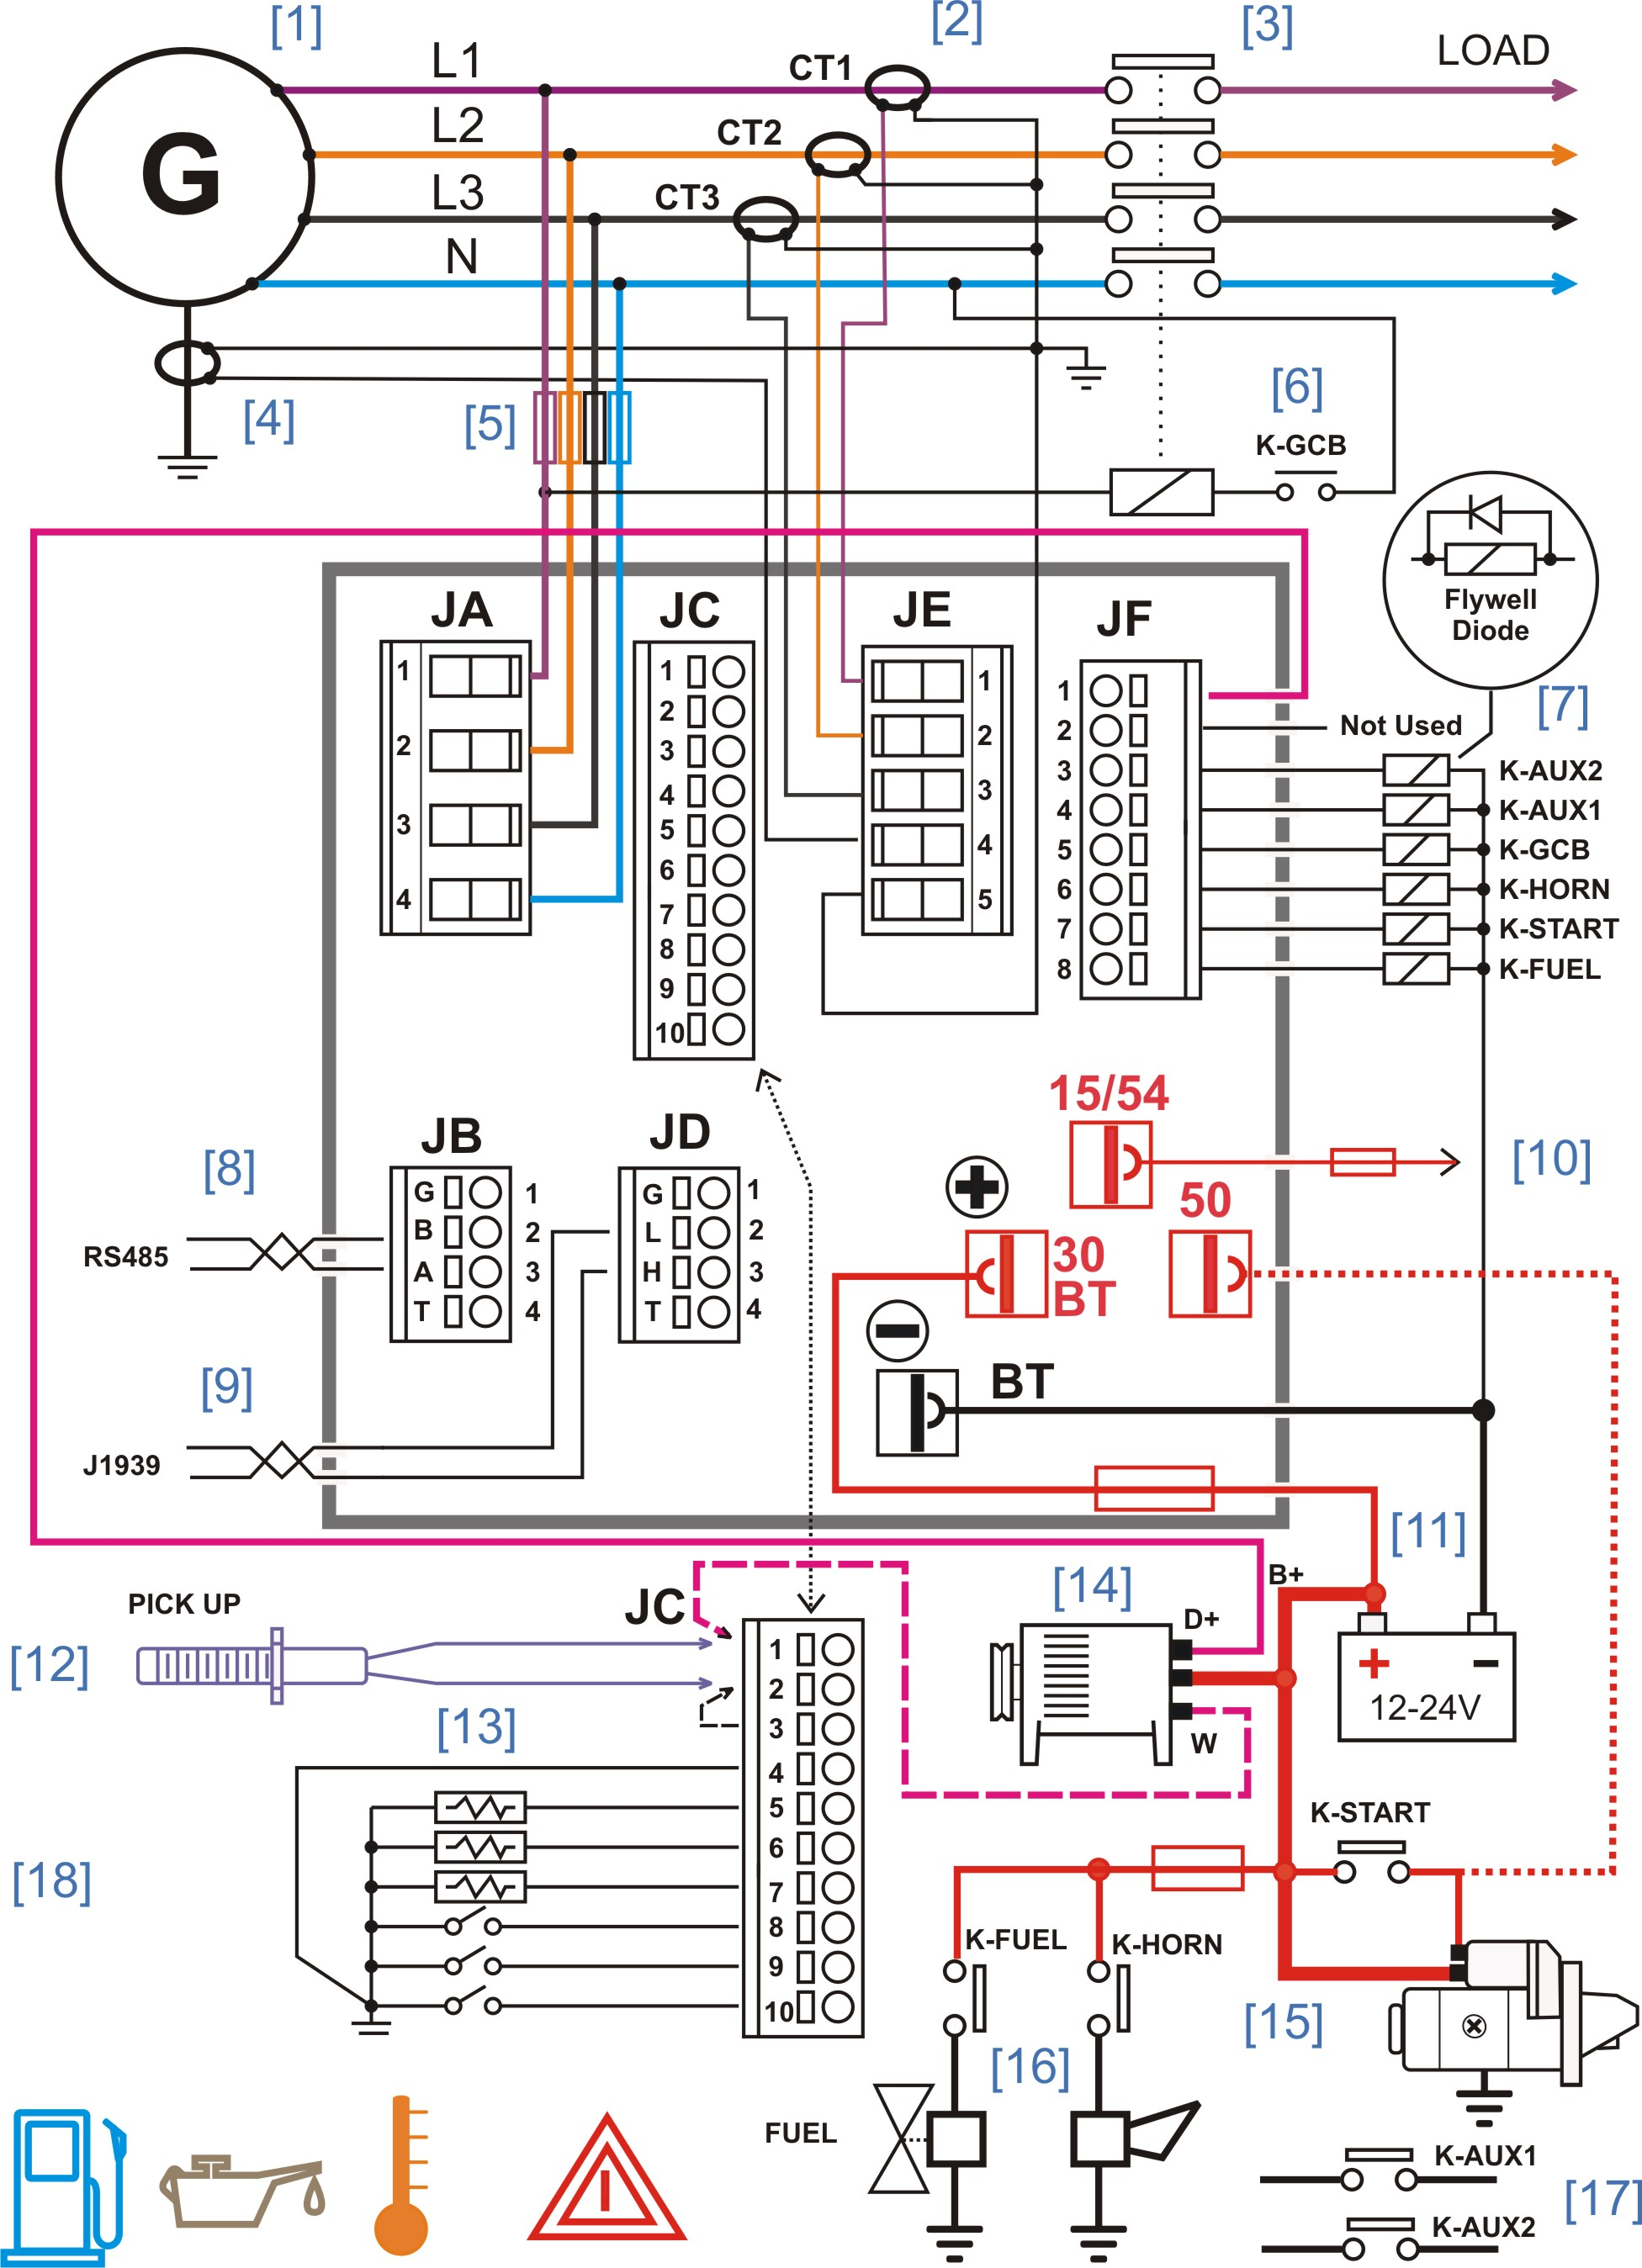 4001e control panel wiring diagram general wiring diagram problems